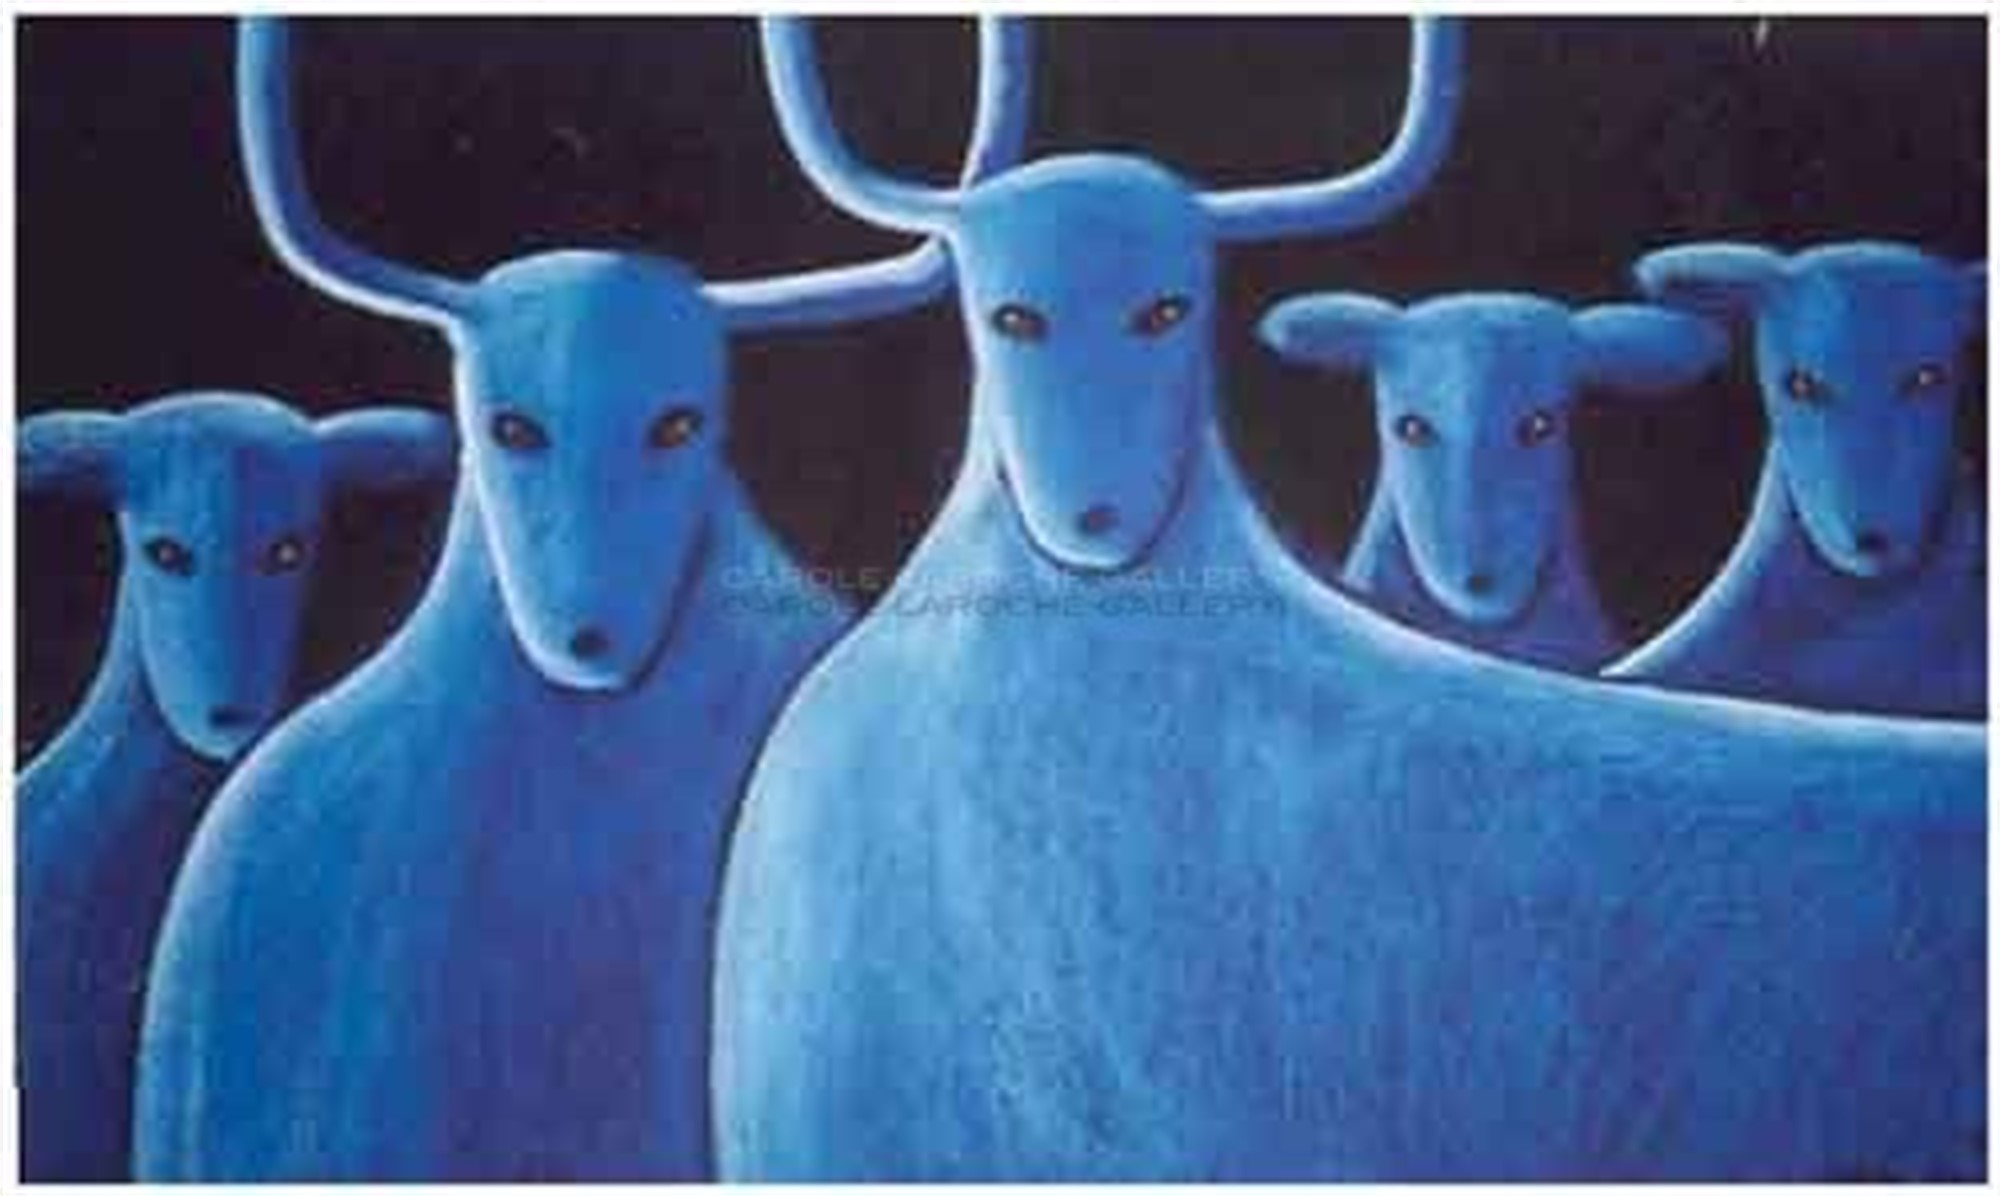 "FIVE BLUE DEER limited edition giclee on paper/framed or on canvas: LARGE 40""x54"" $3500 or MEDIUM 30""x40"" $2200 by Carole LaRoche"